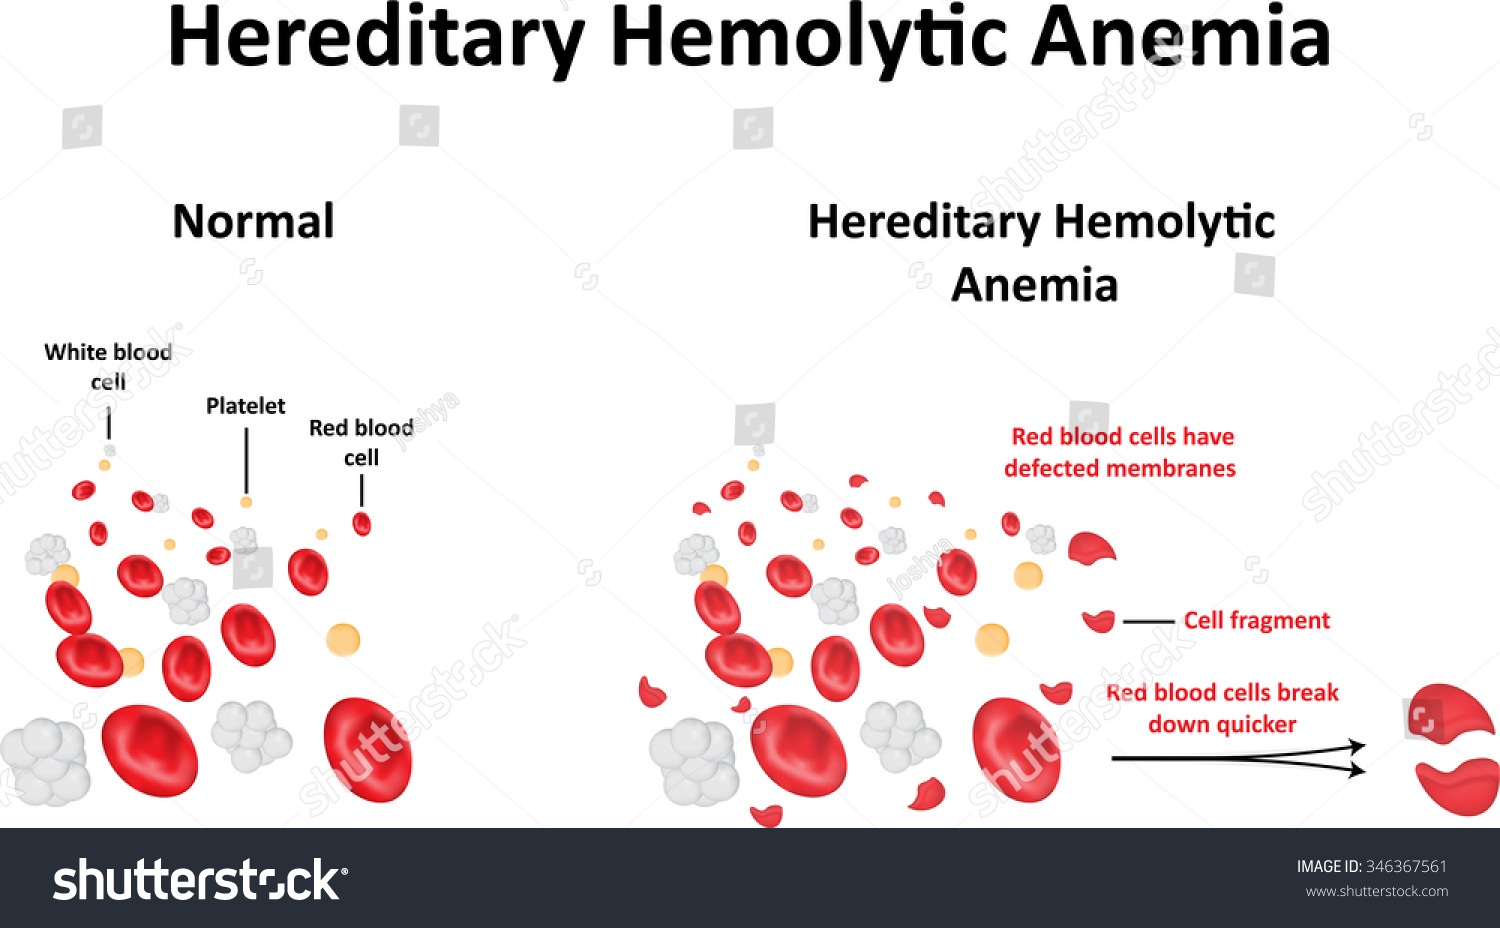 hereditary hemolytic anemia diagram stock vector 346367561, Skeleton